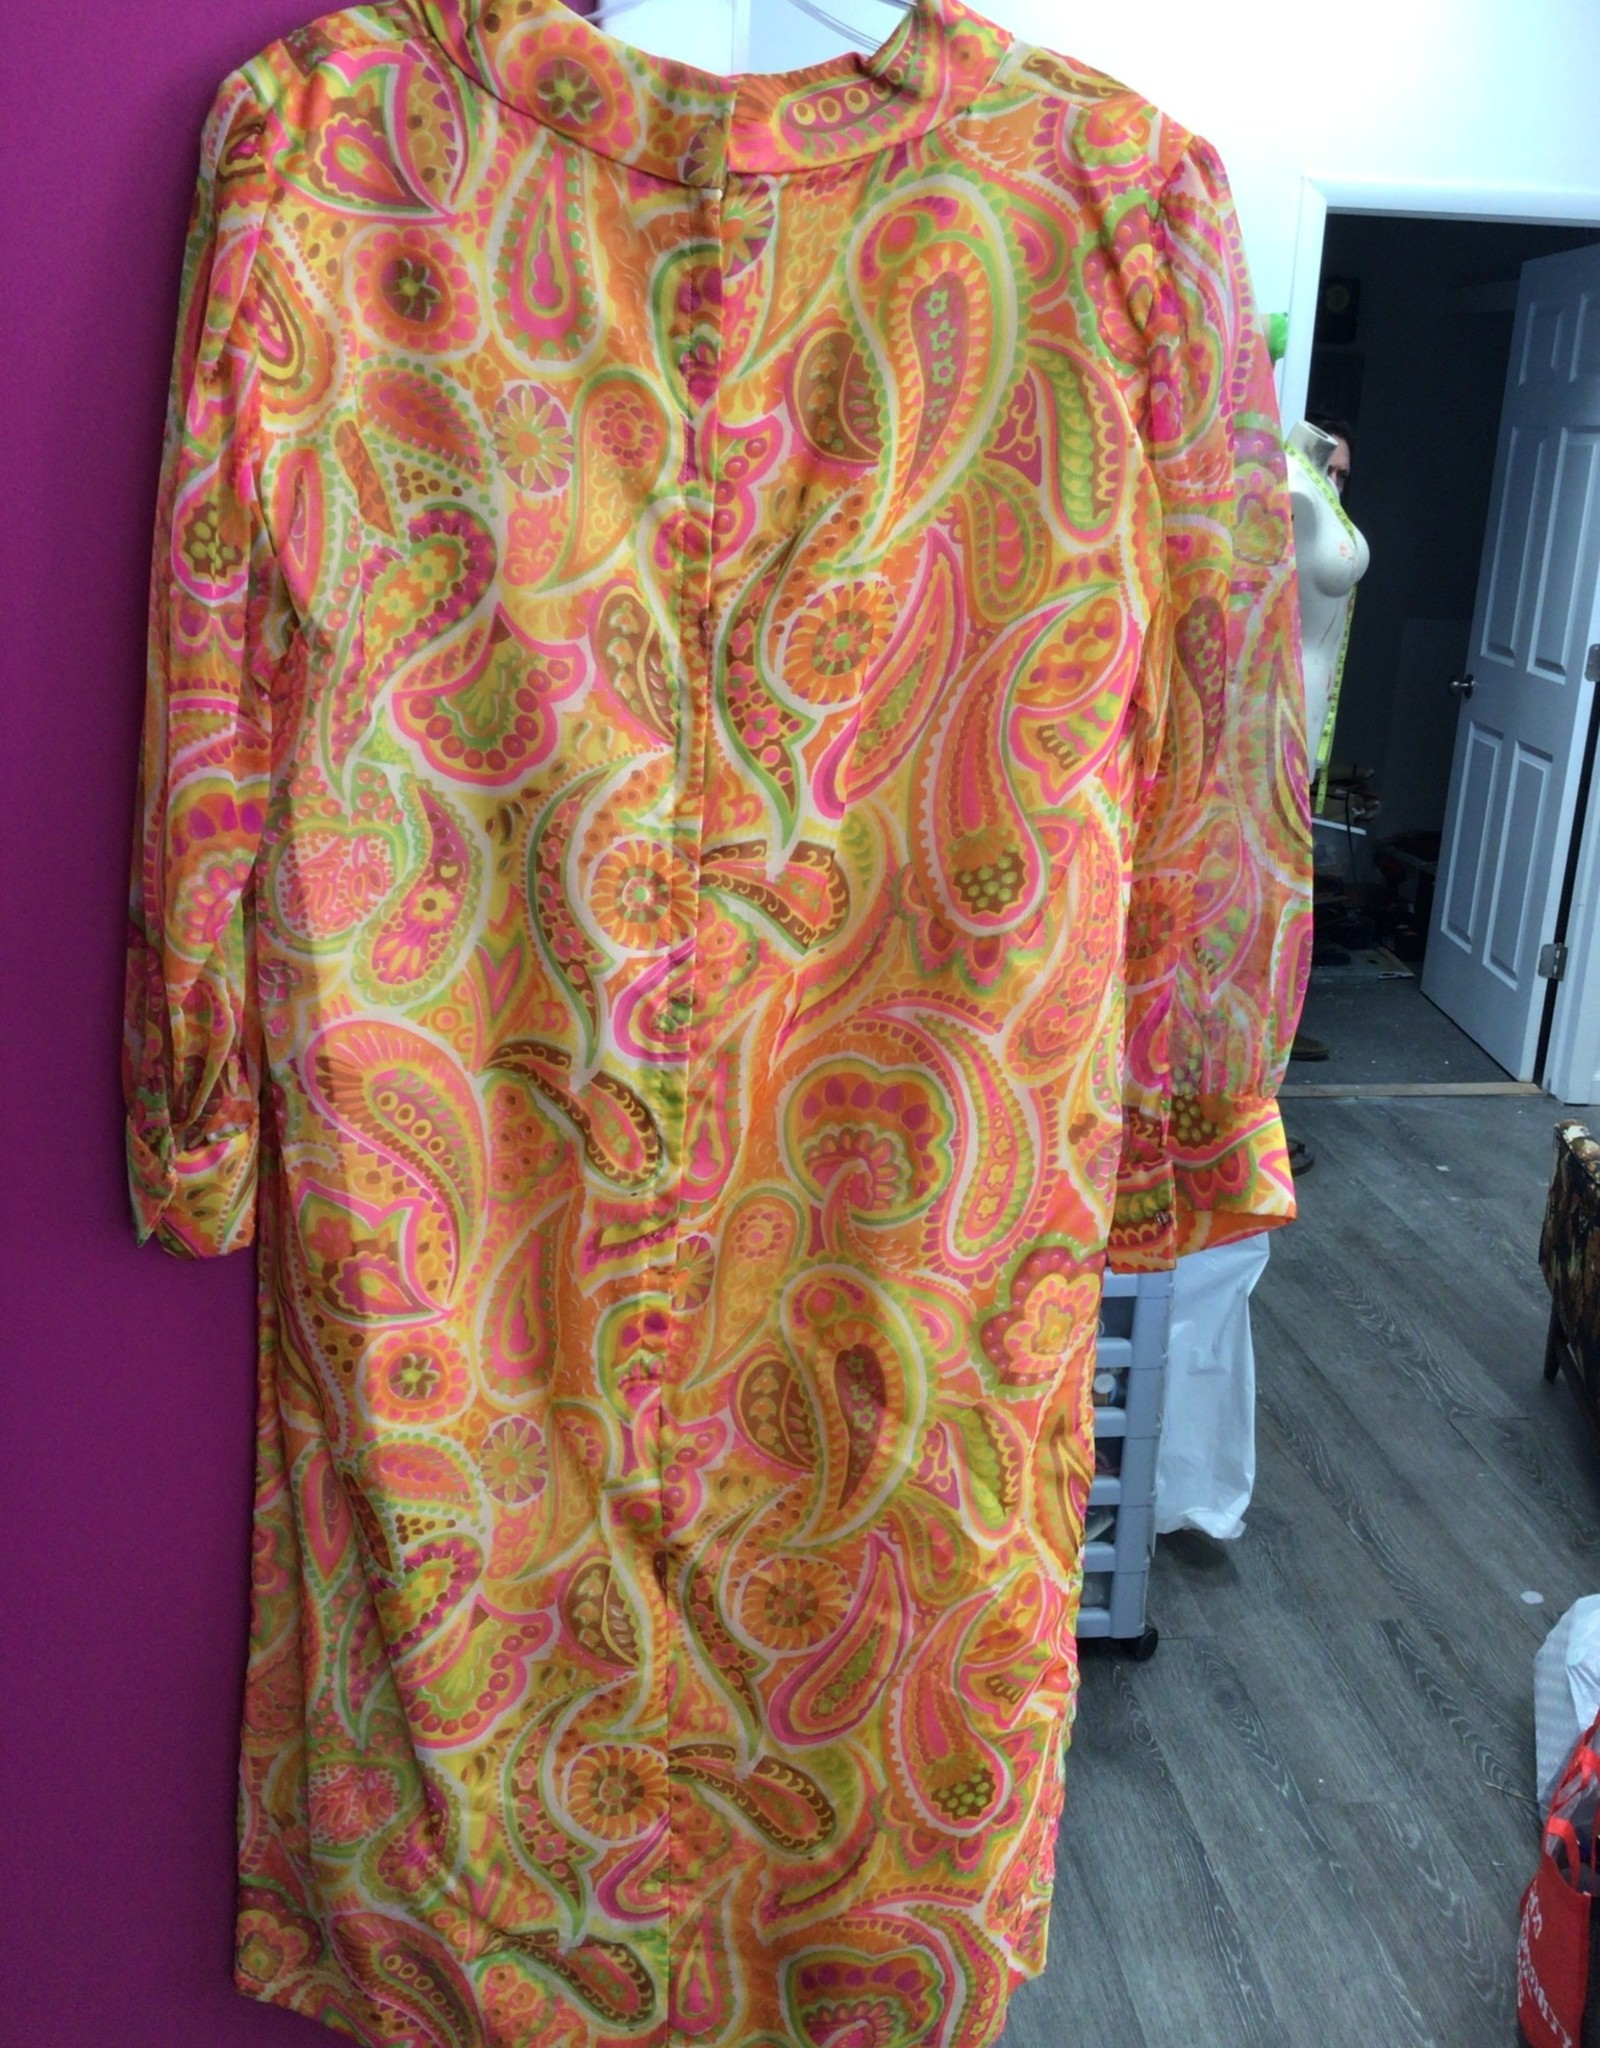 70's floral paisly dress sheer arms